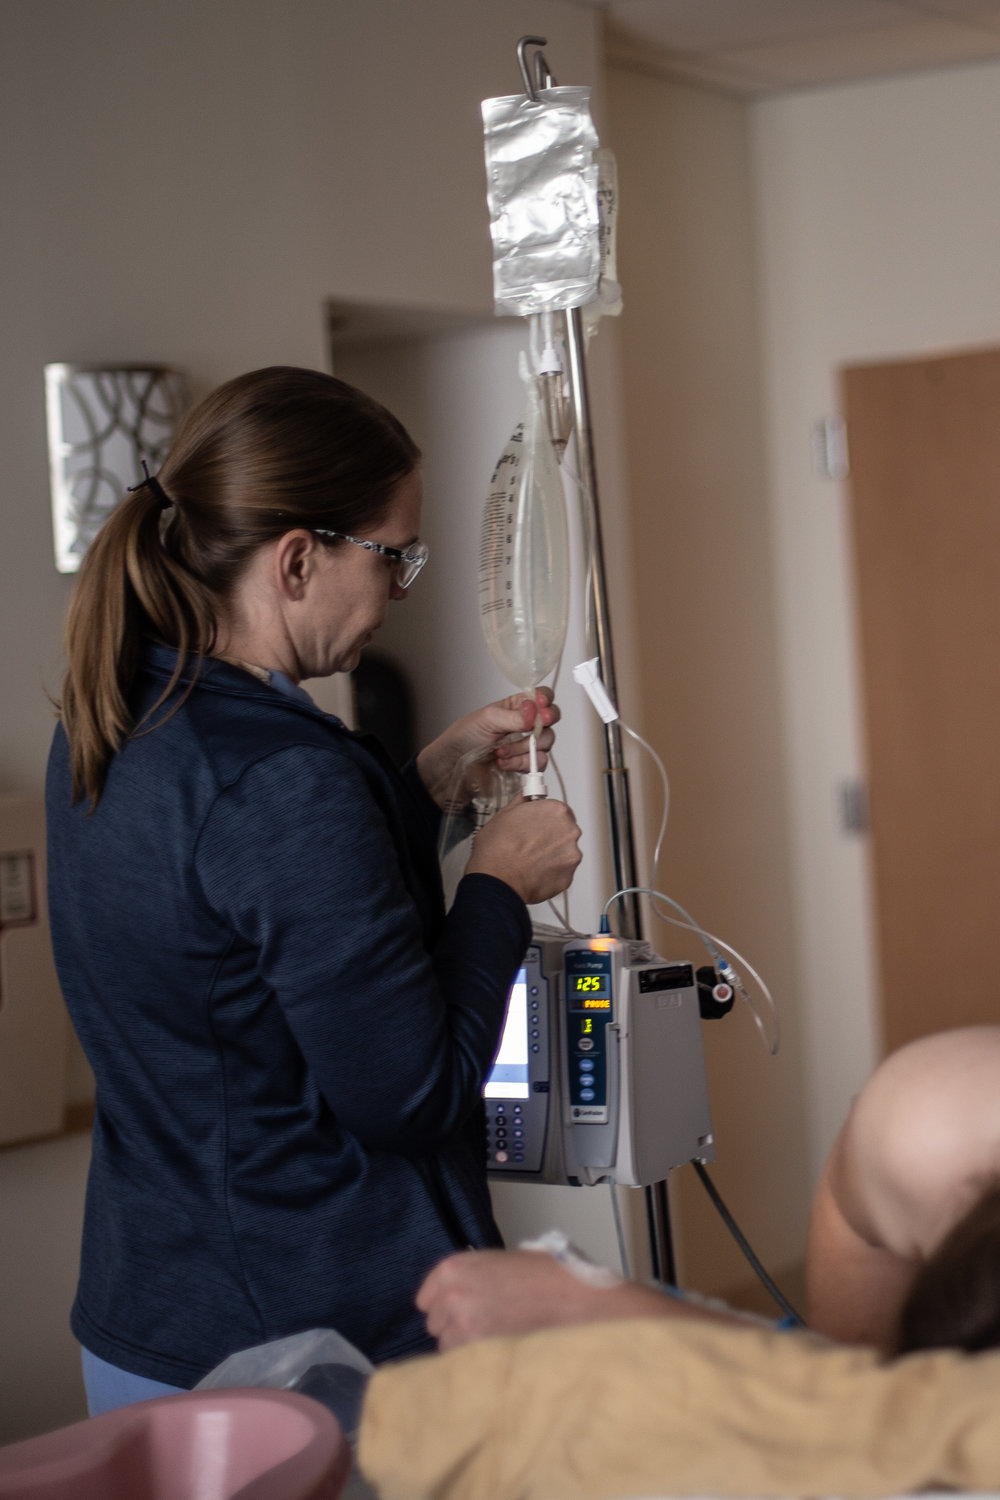 Hospital labor and delivery nurse fills an IV bag.